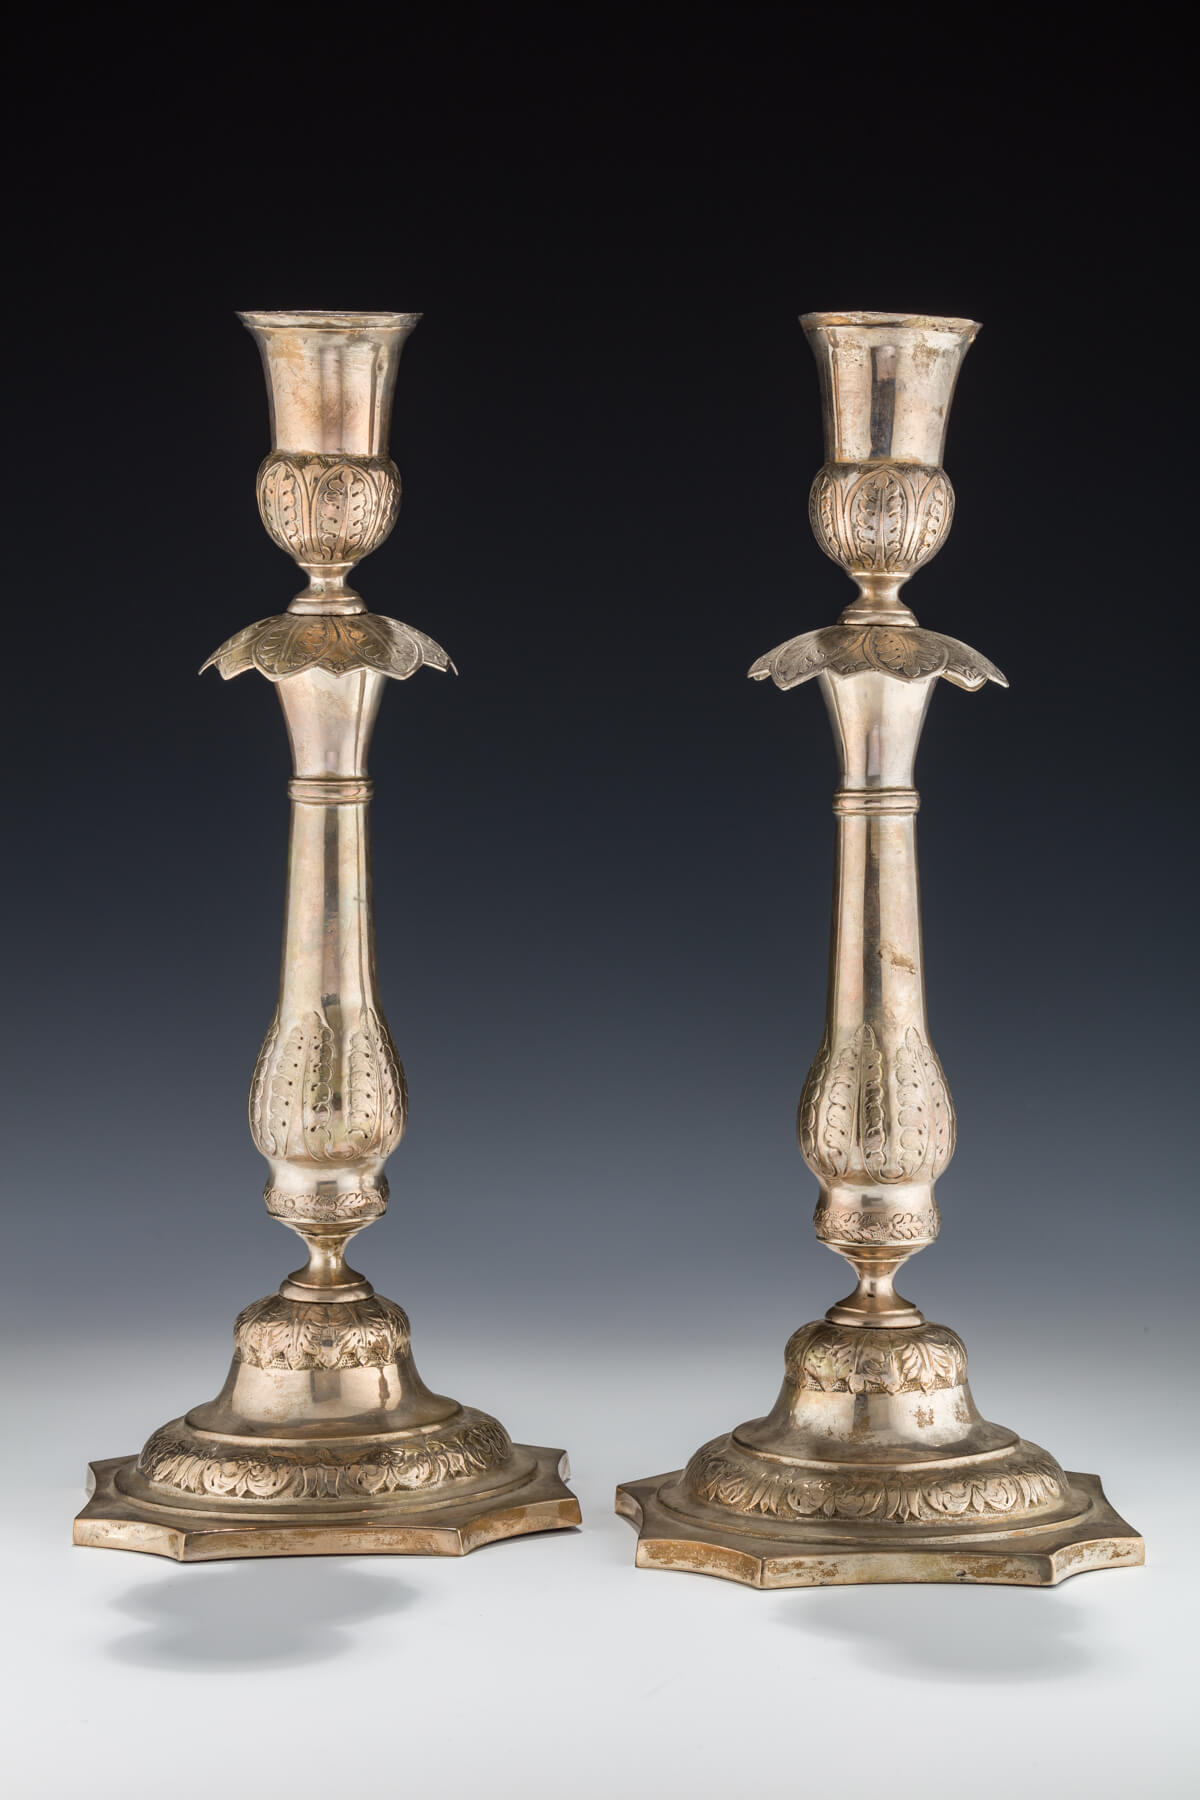 010. A Pair of Large Silver Candlesticks